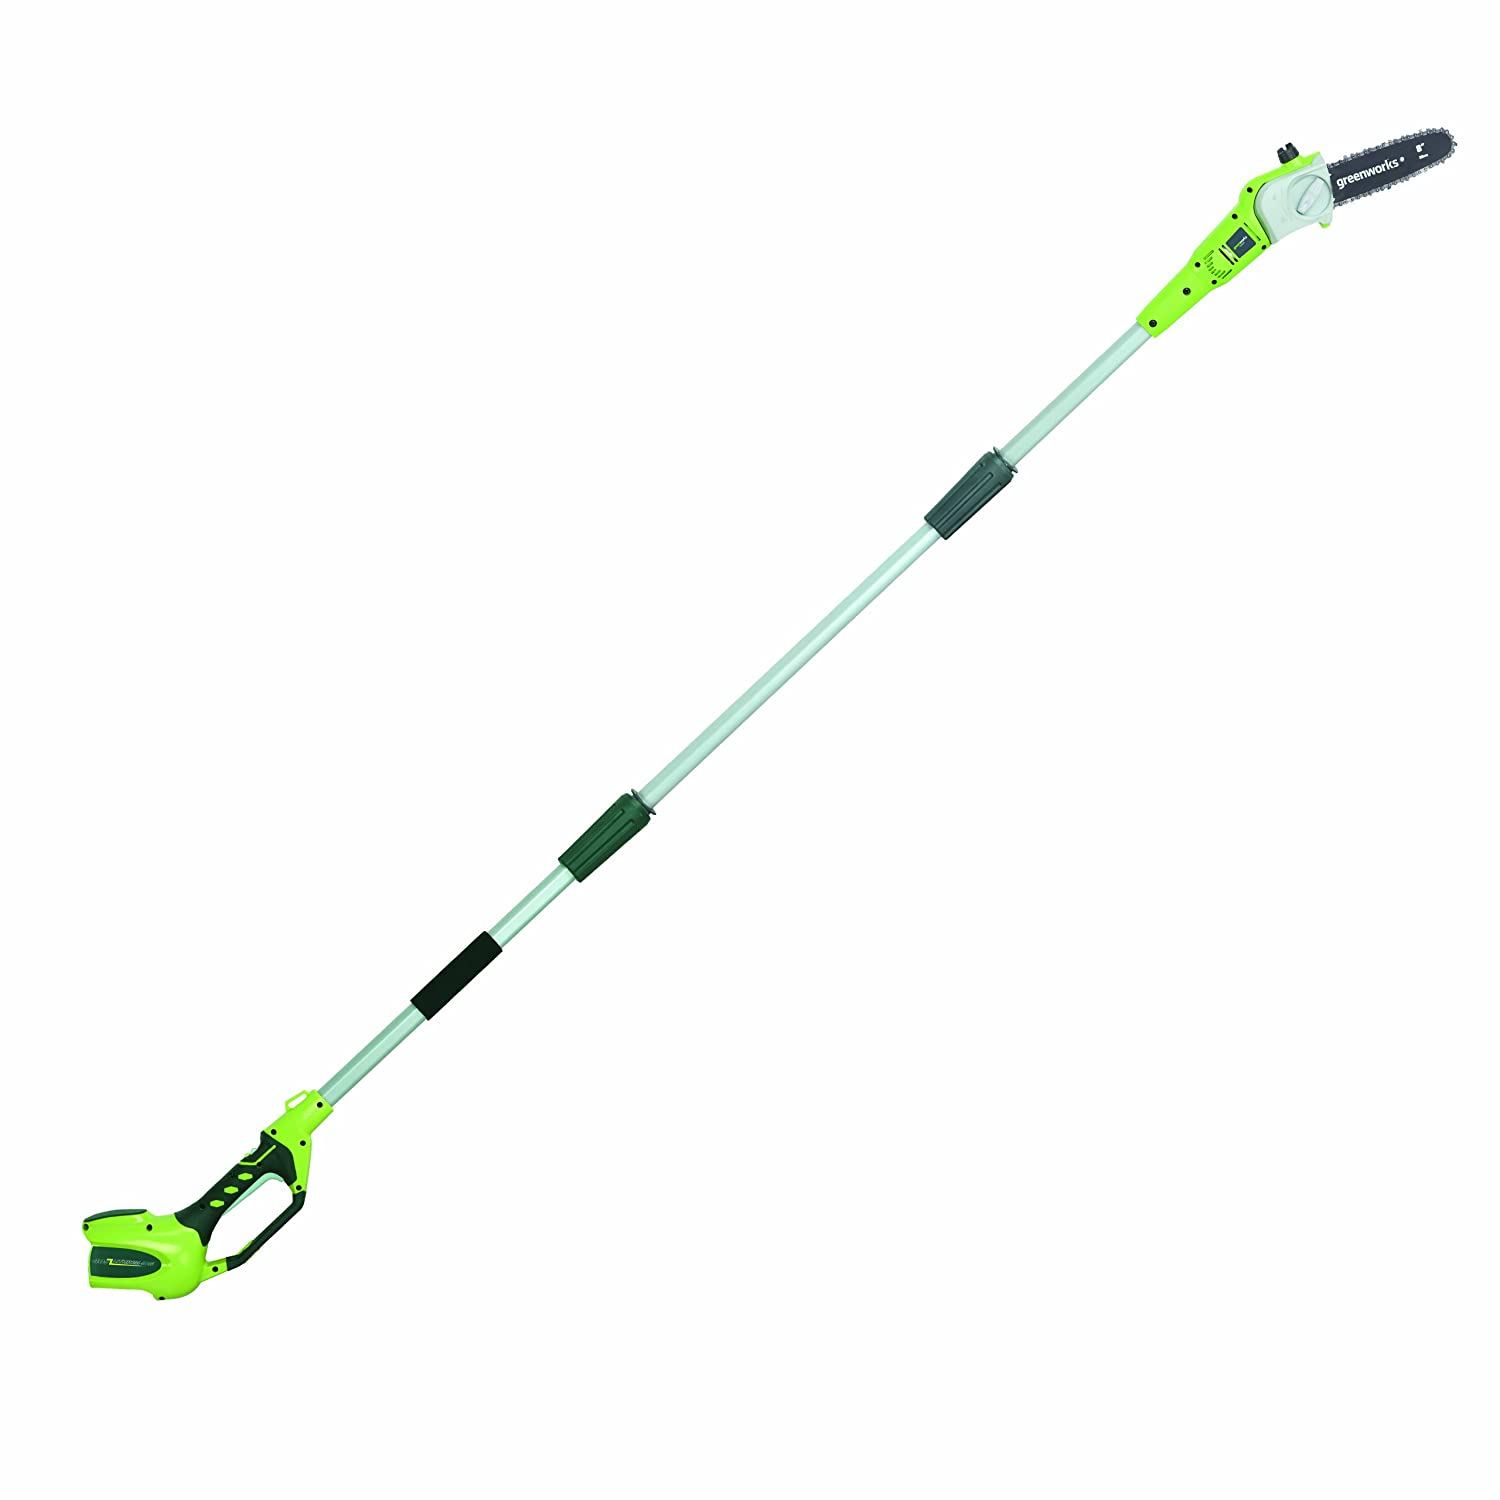 Greenworks 8.5' 40V Cordless Pole Saw, Battery Not Included 20302